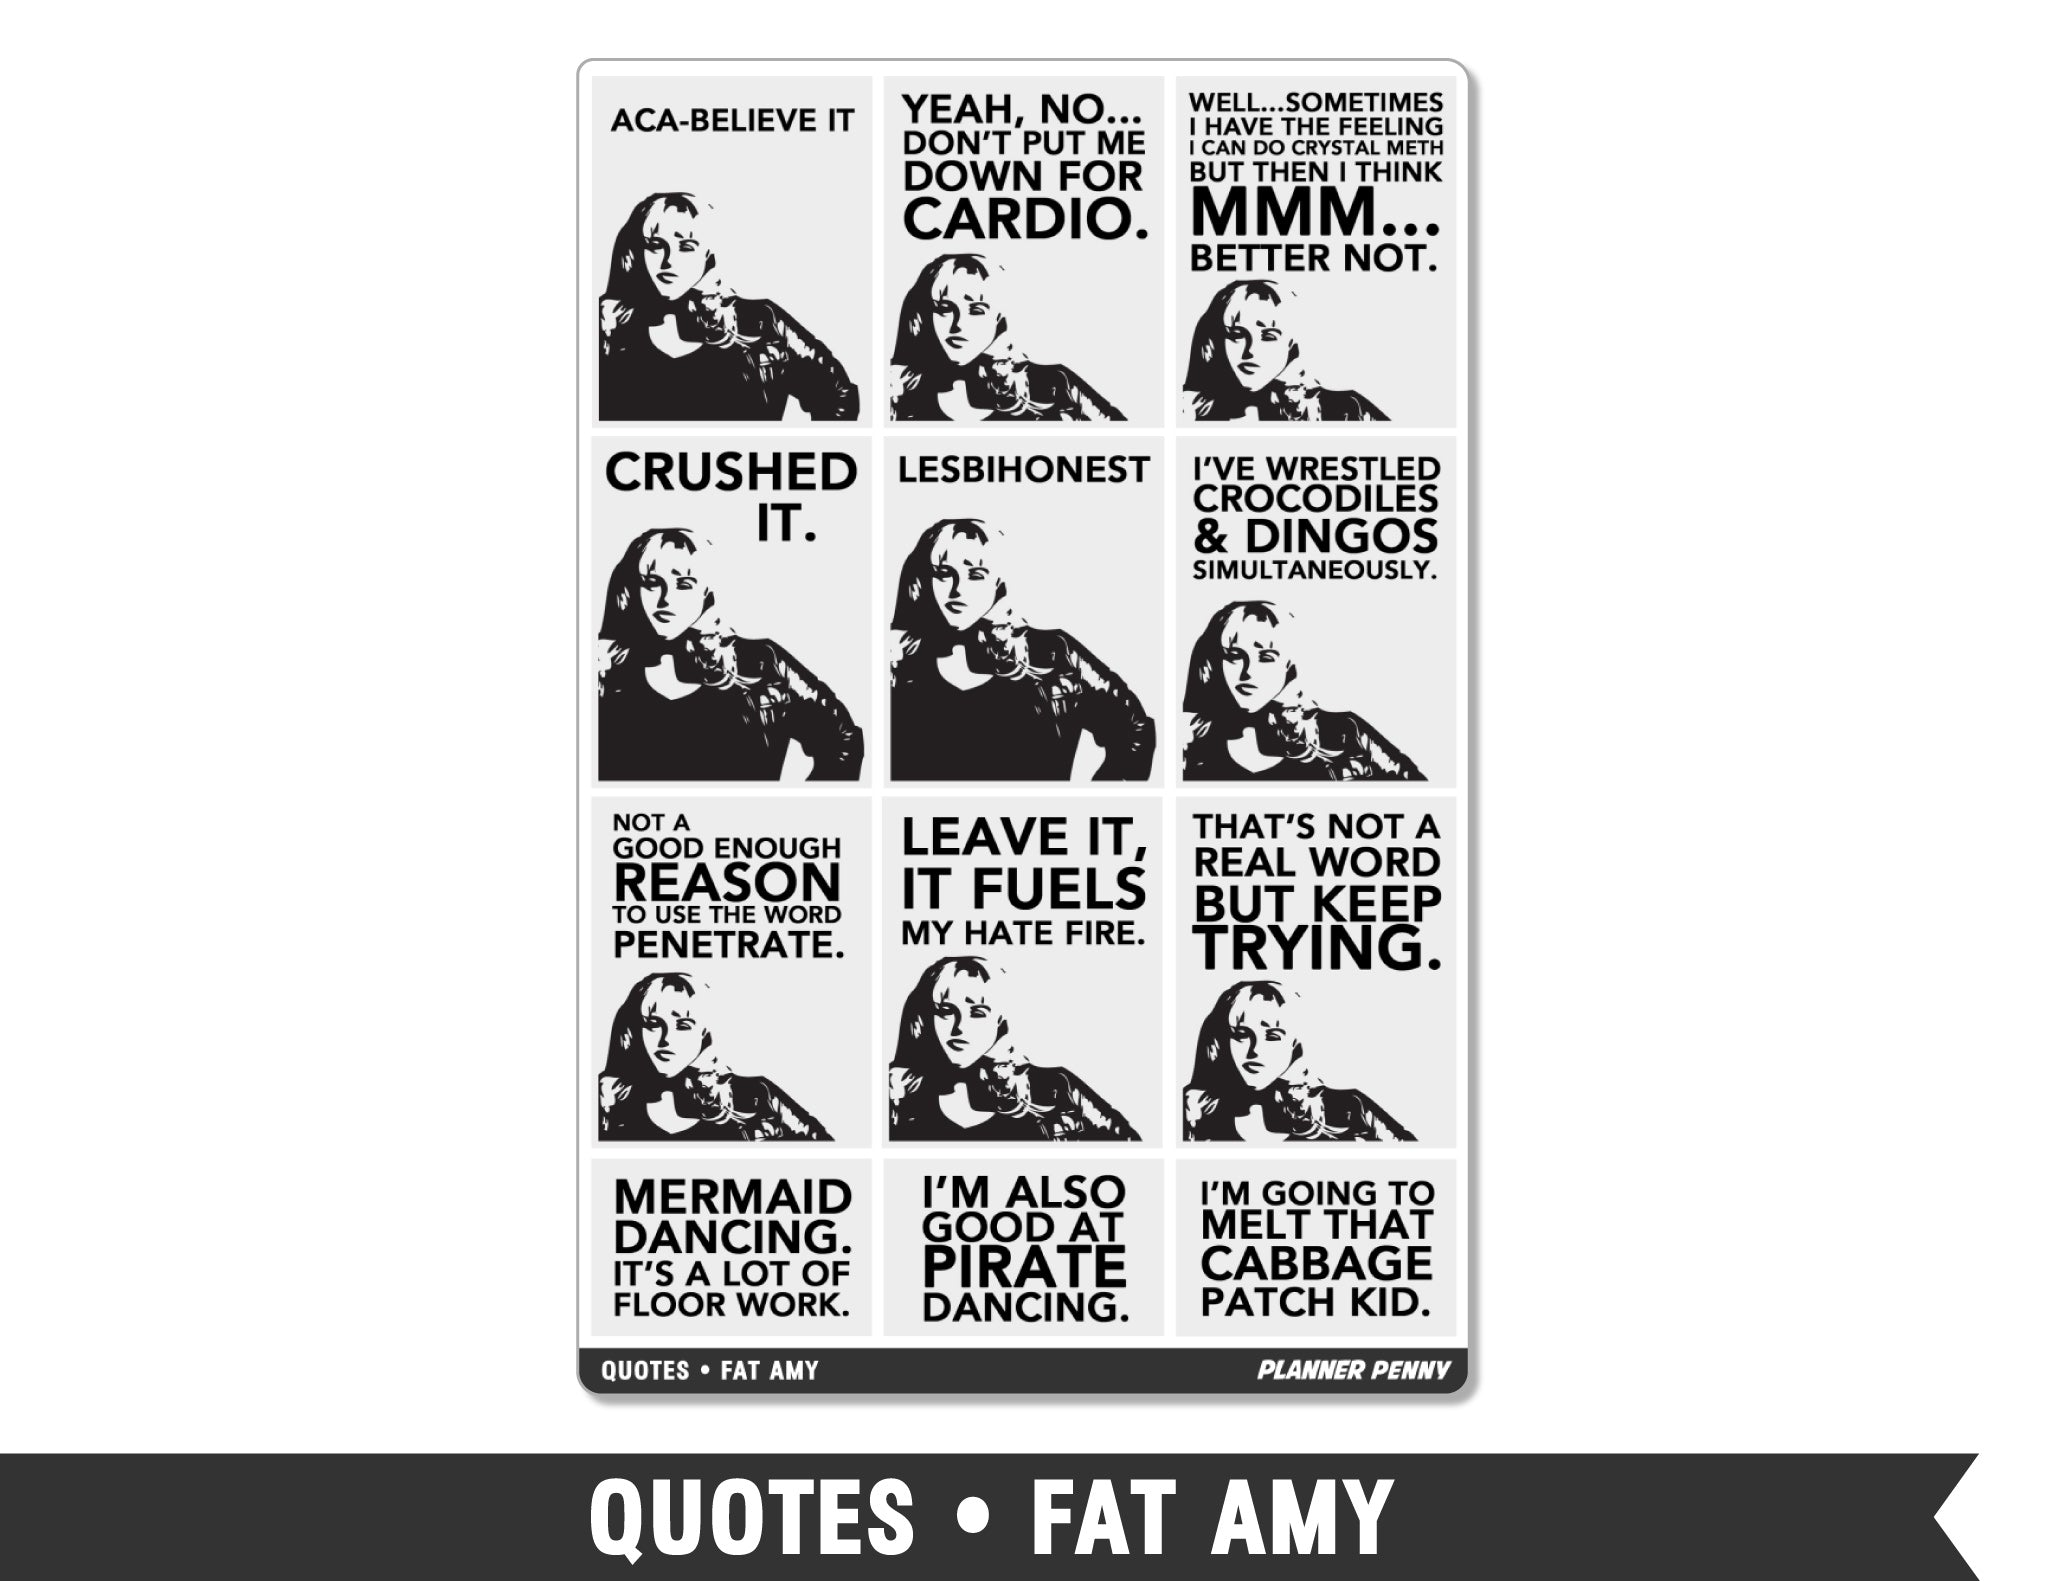 Quotes • Fat Amy Full Box Planner Stickers